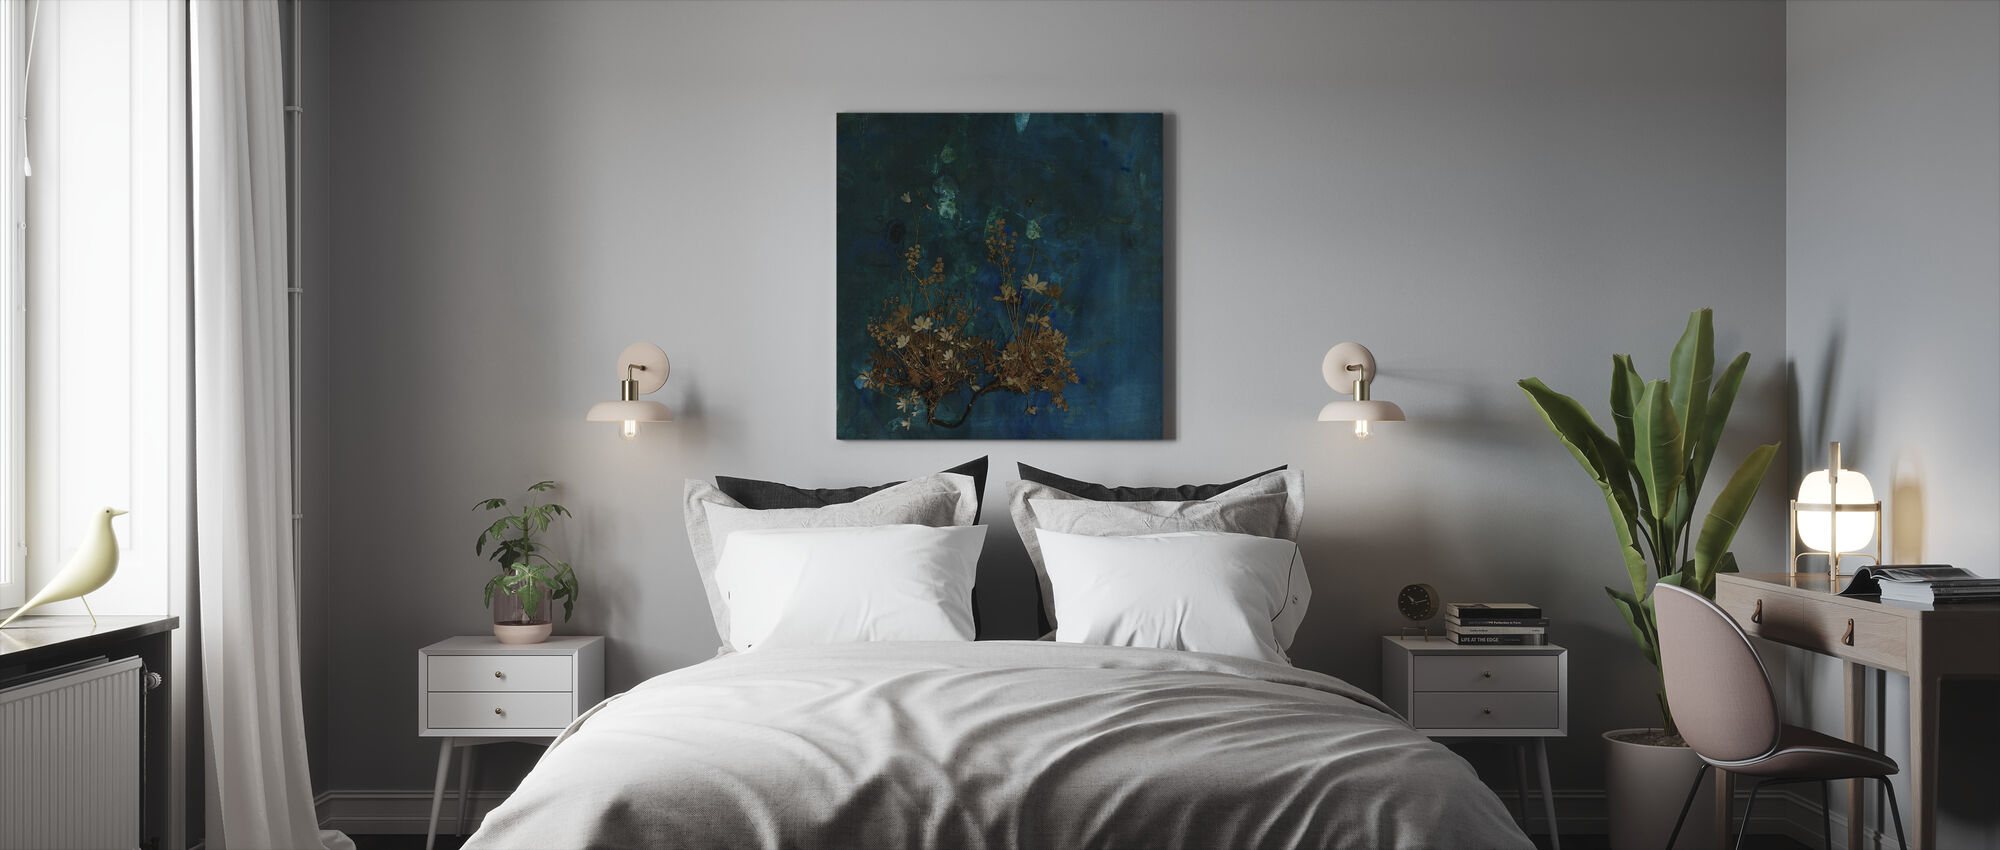 Plateau - Canvas print - Bedroom